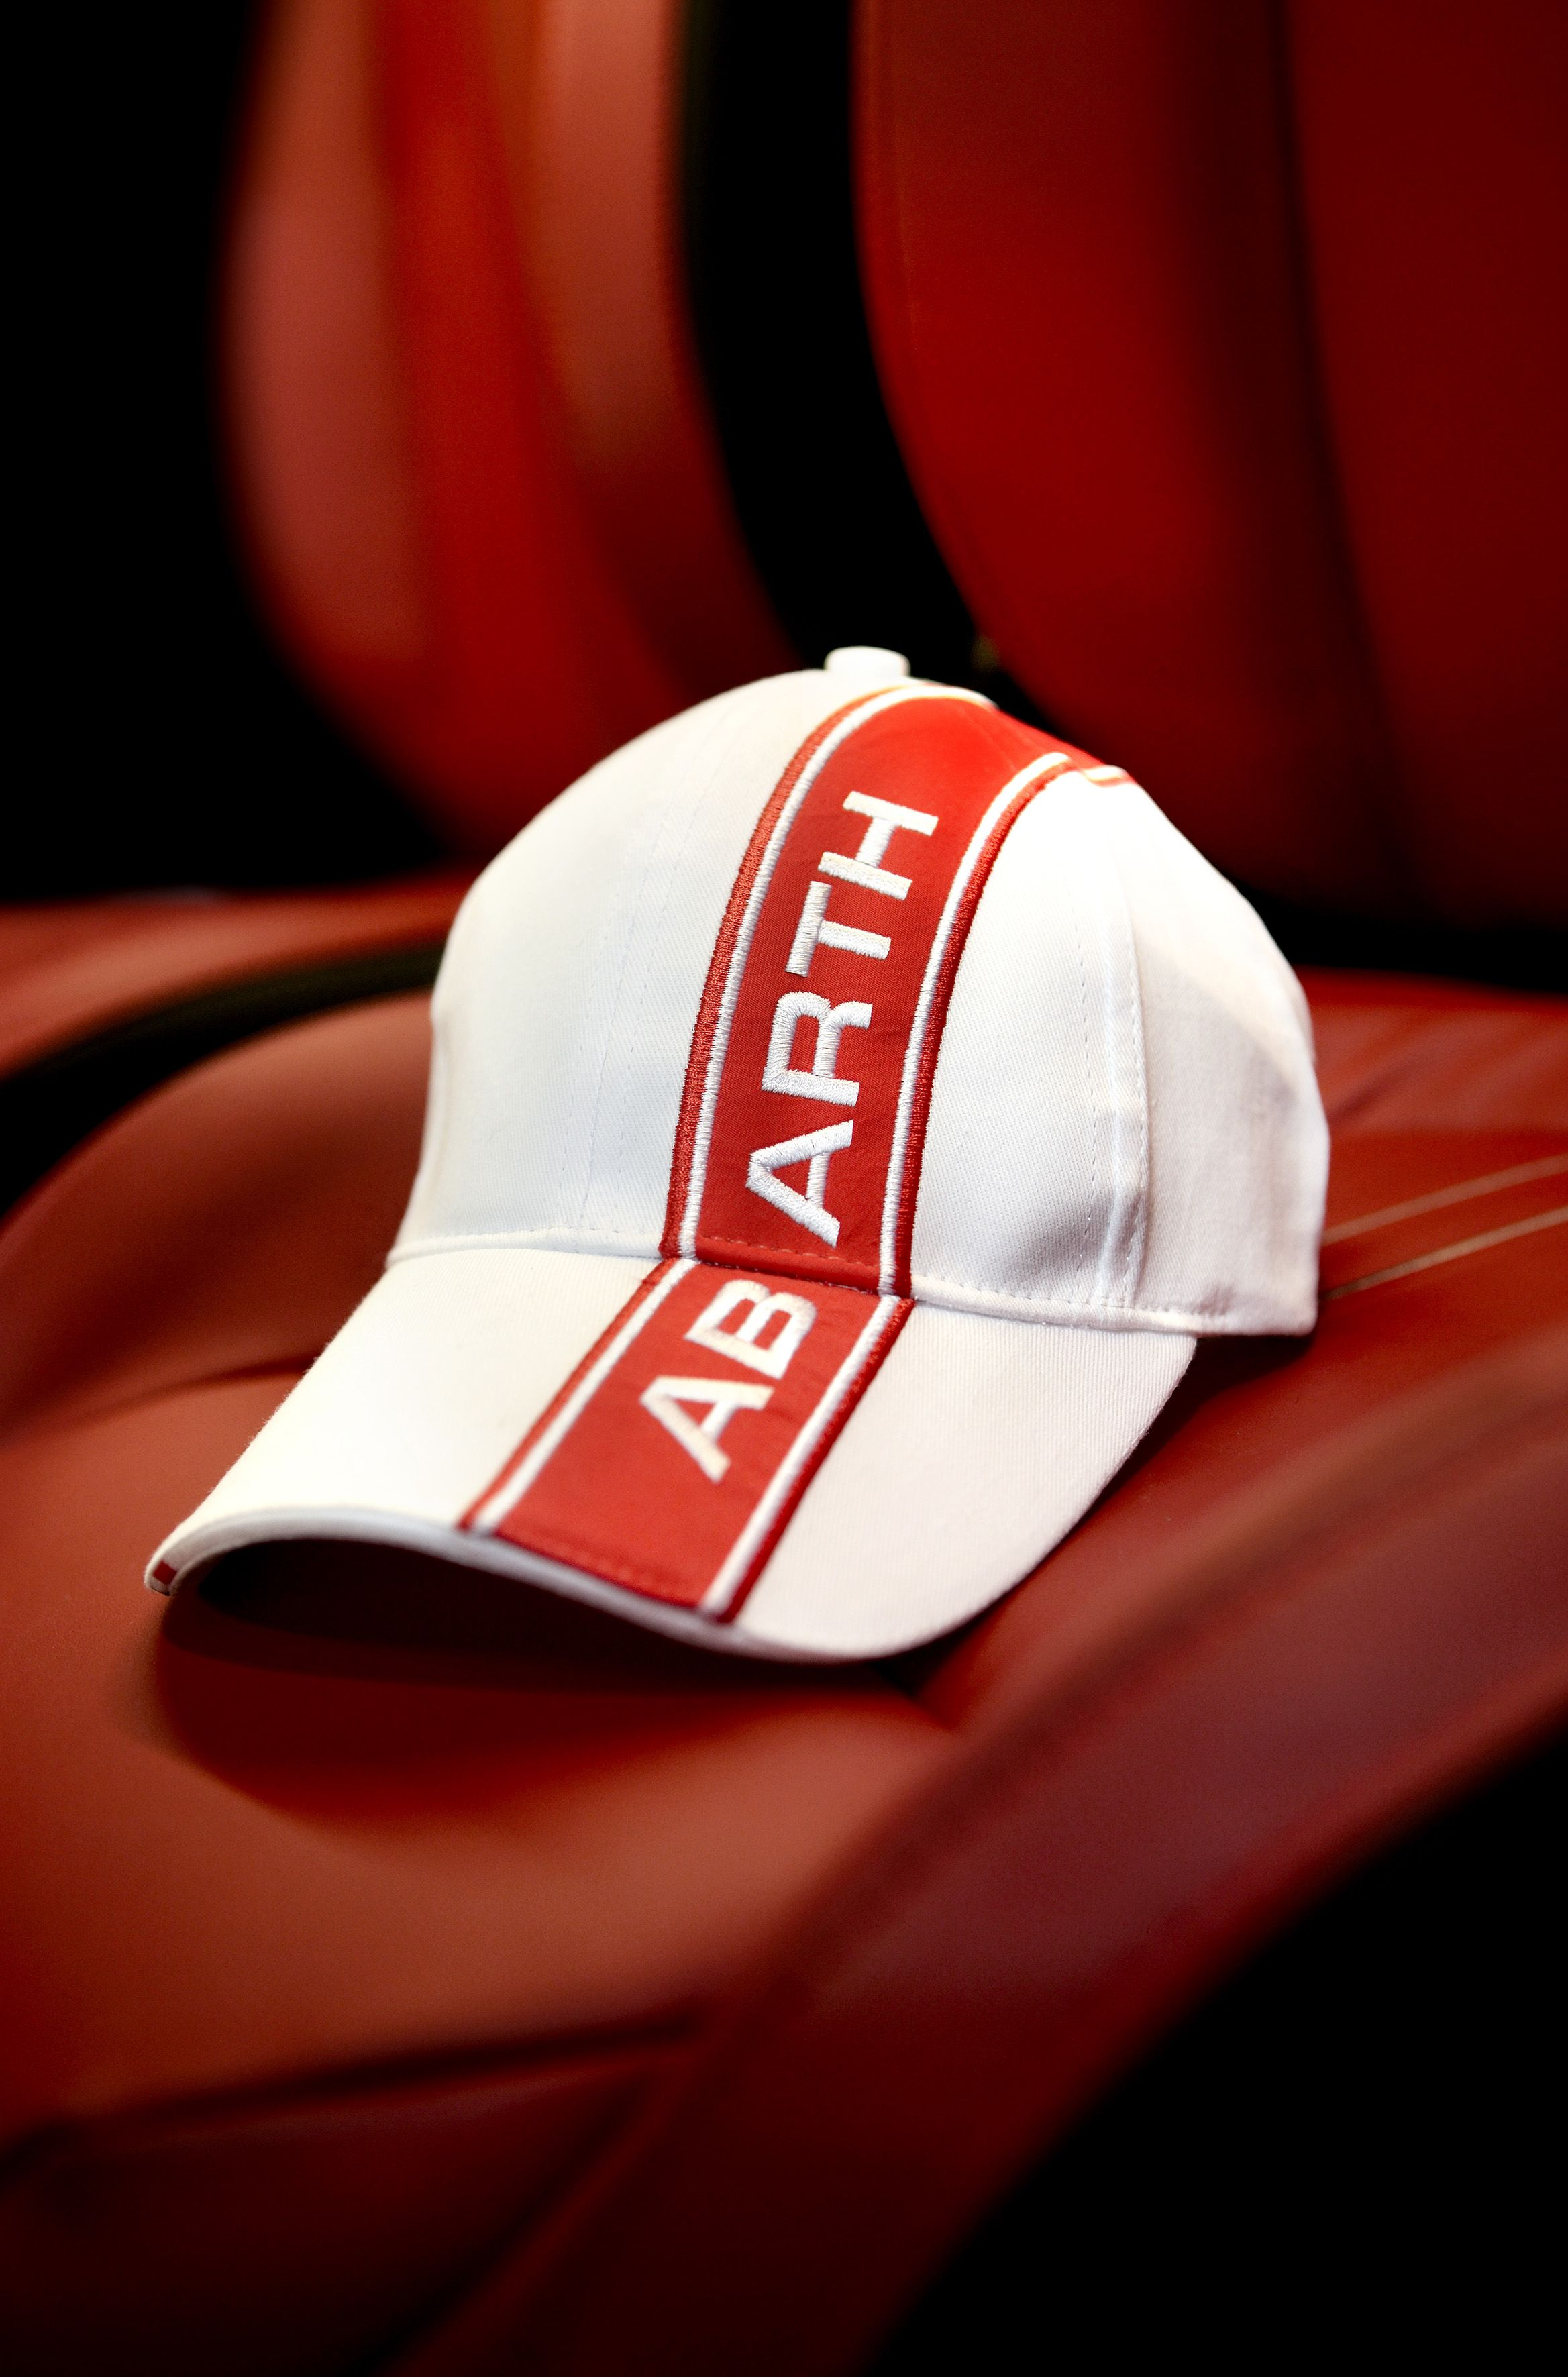 Check it out here: //www.abarthstore.com/en/product/cap-abarth ...